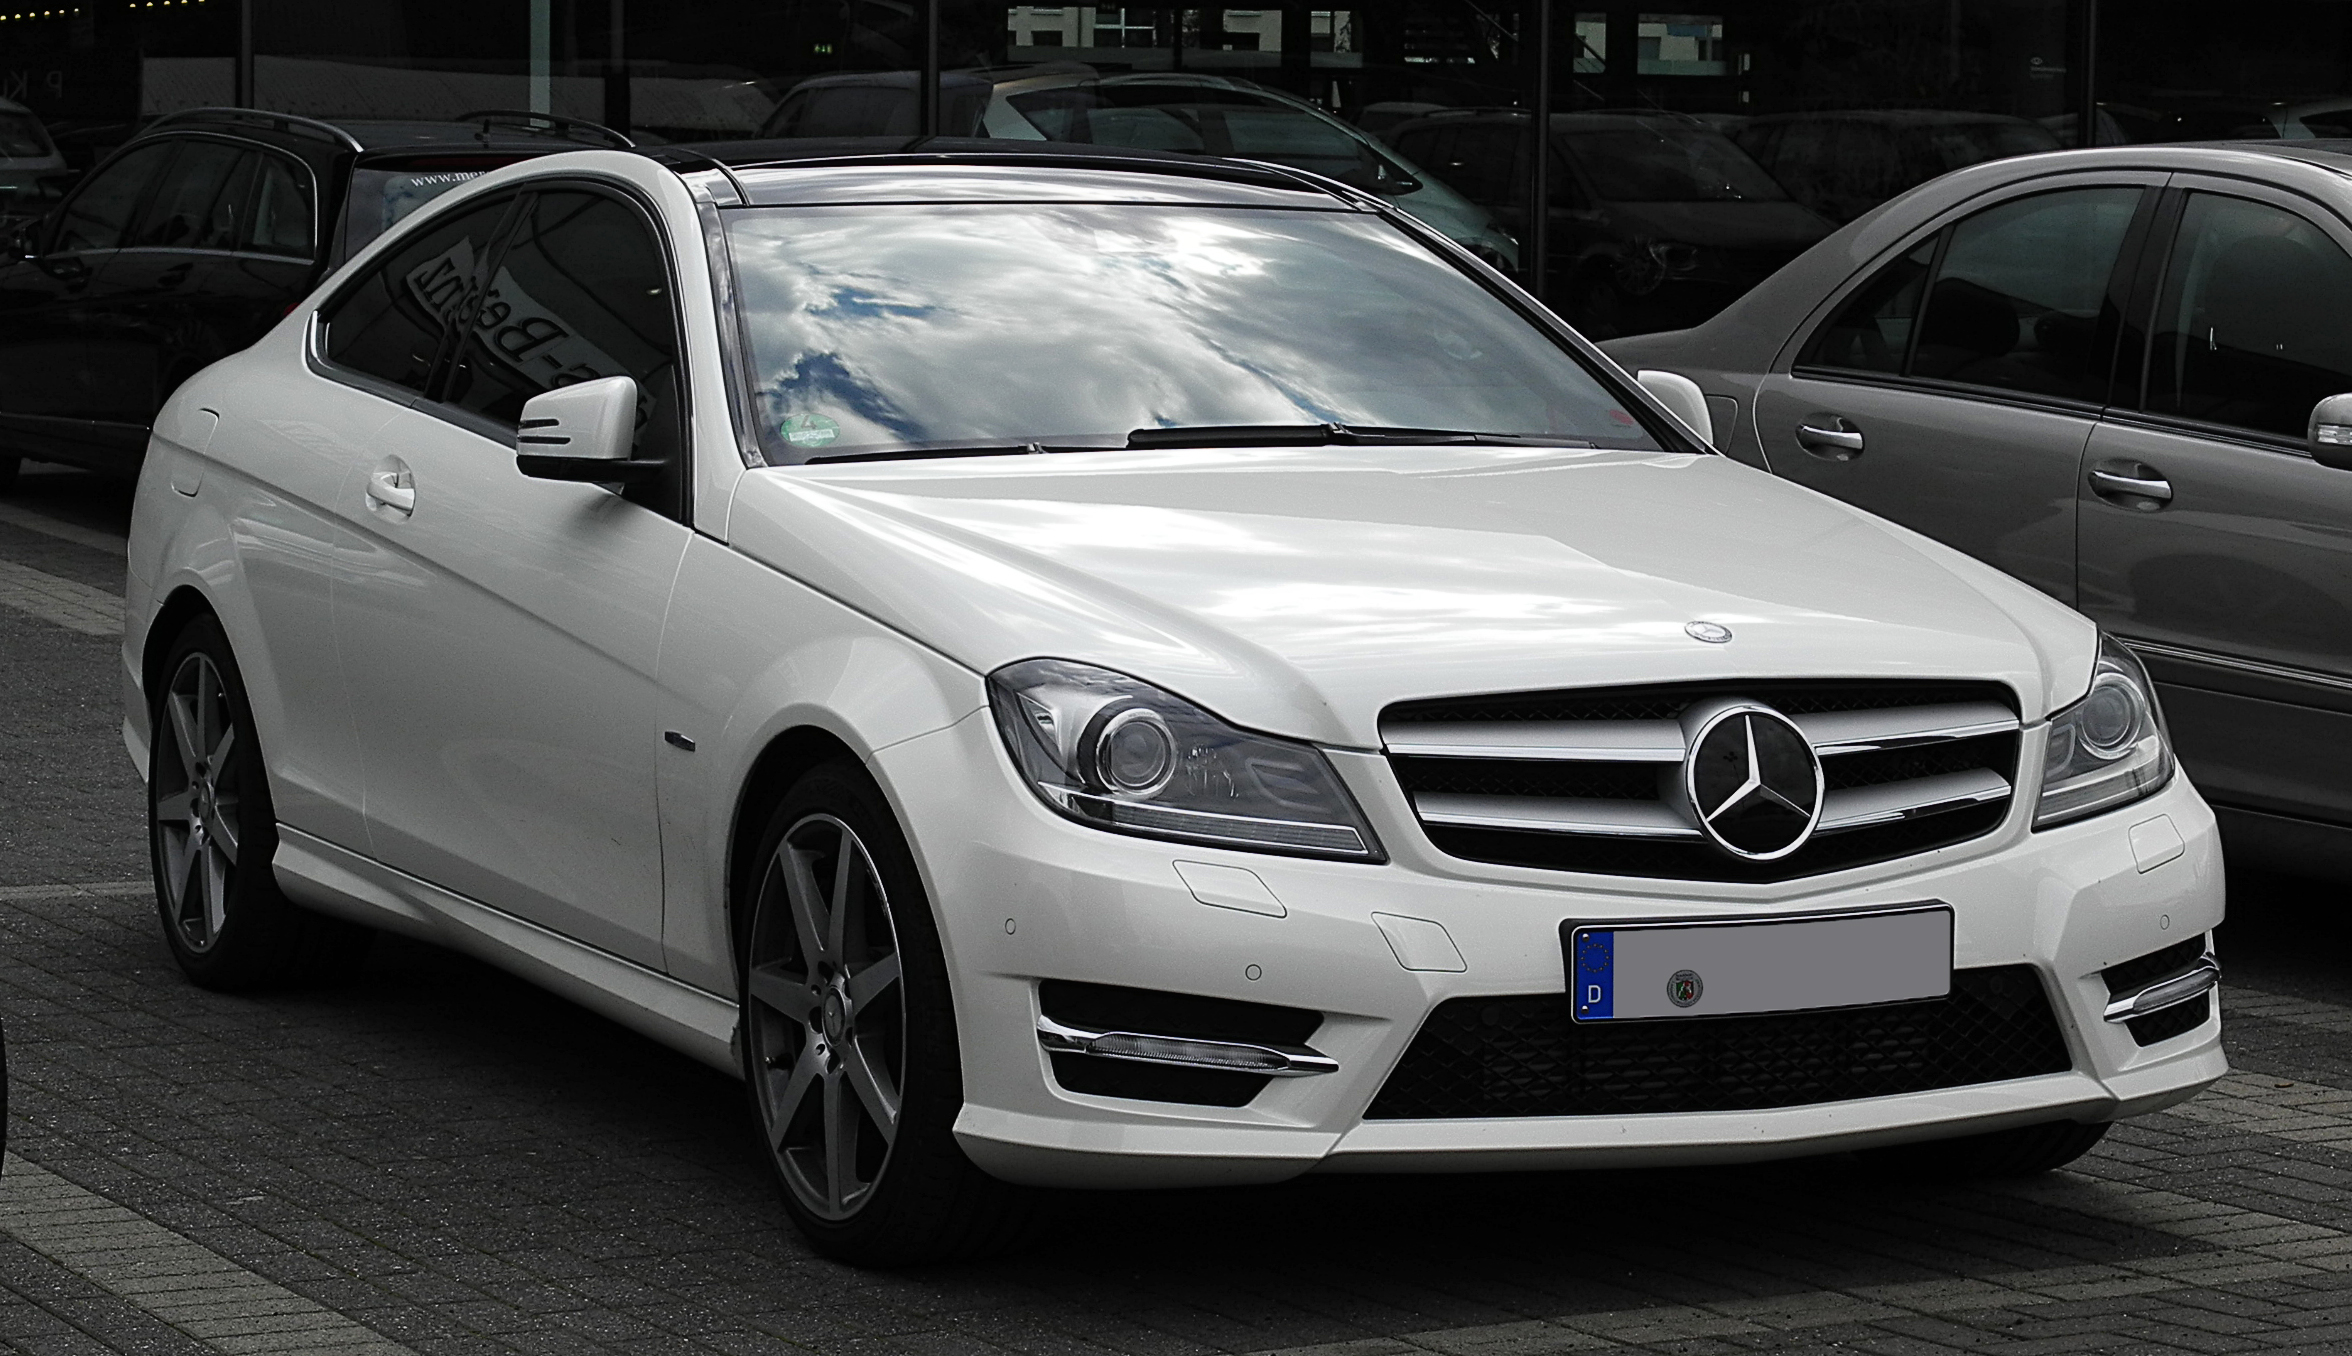 Description Mercedes-Benz C 250 CDI BlueEFFICIENCY Coupé Edition 1 (C